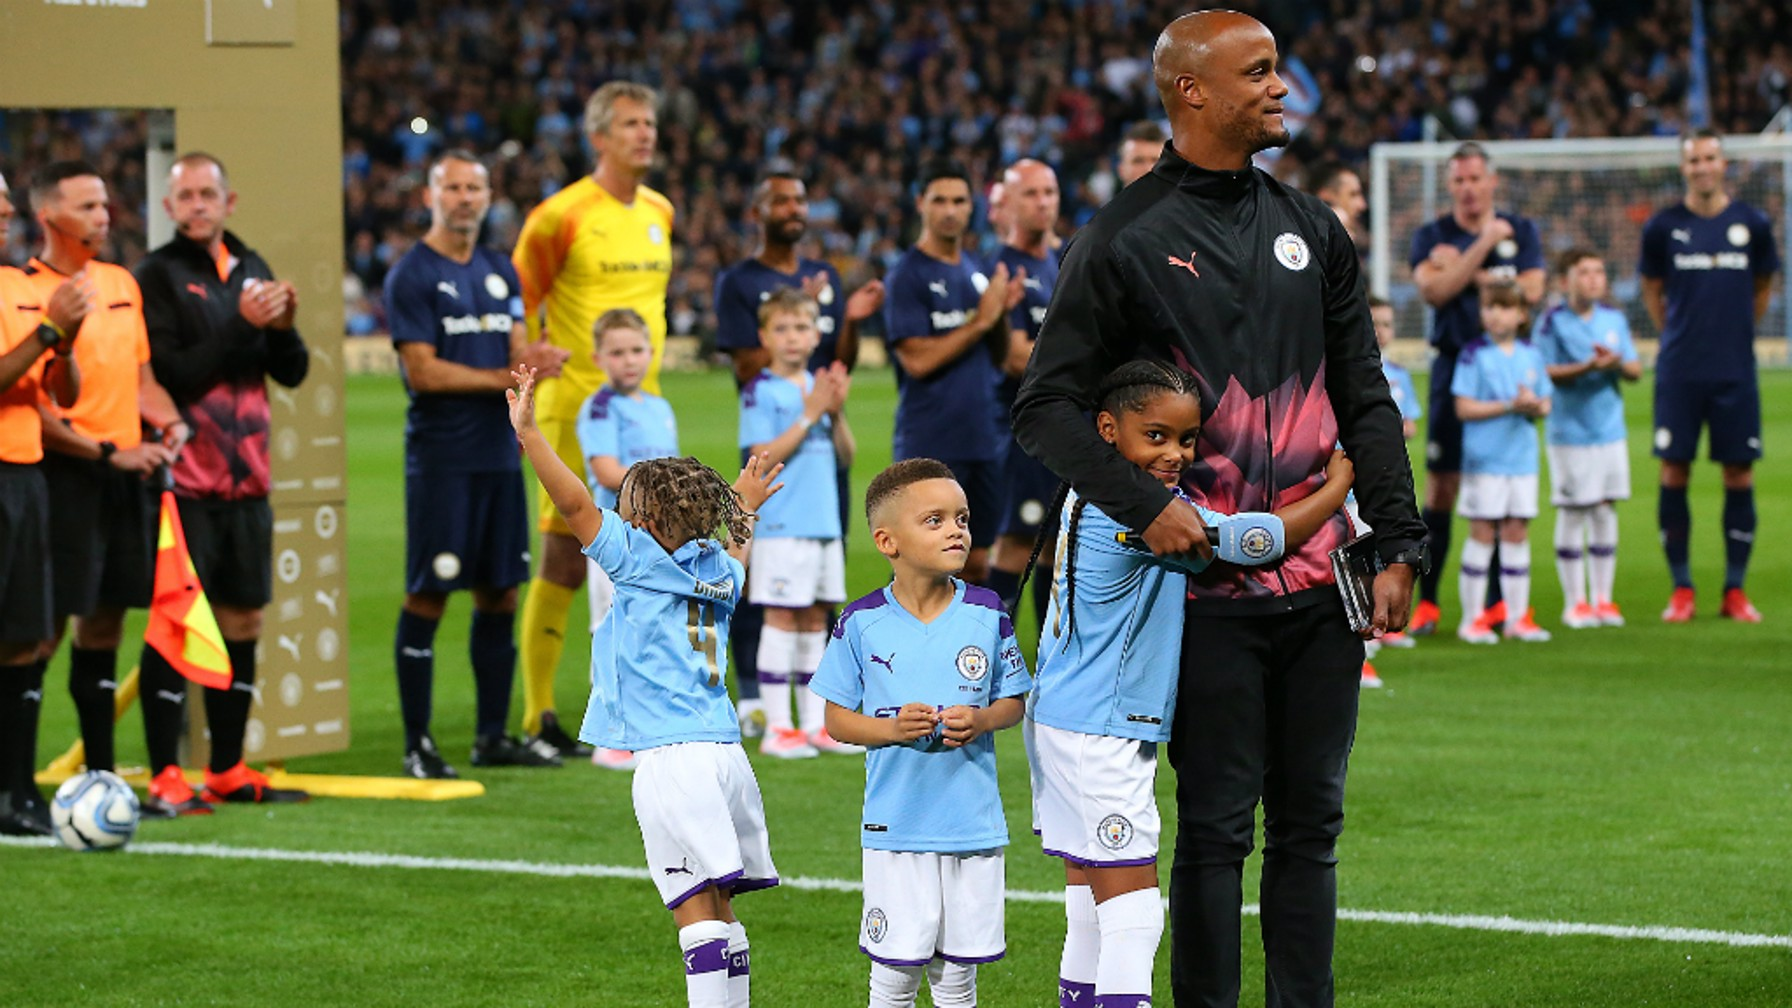 FAMILY FIRST: Kompany gives an emotional opening with his children by his side